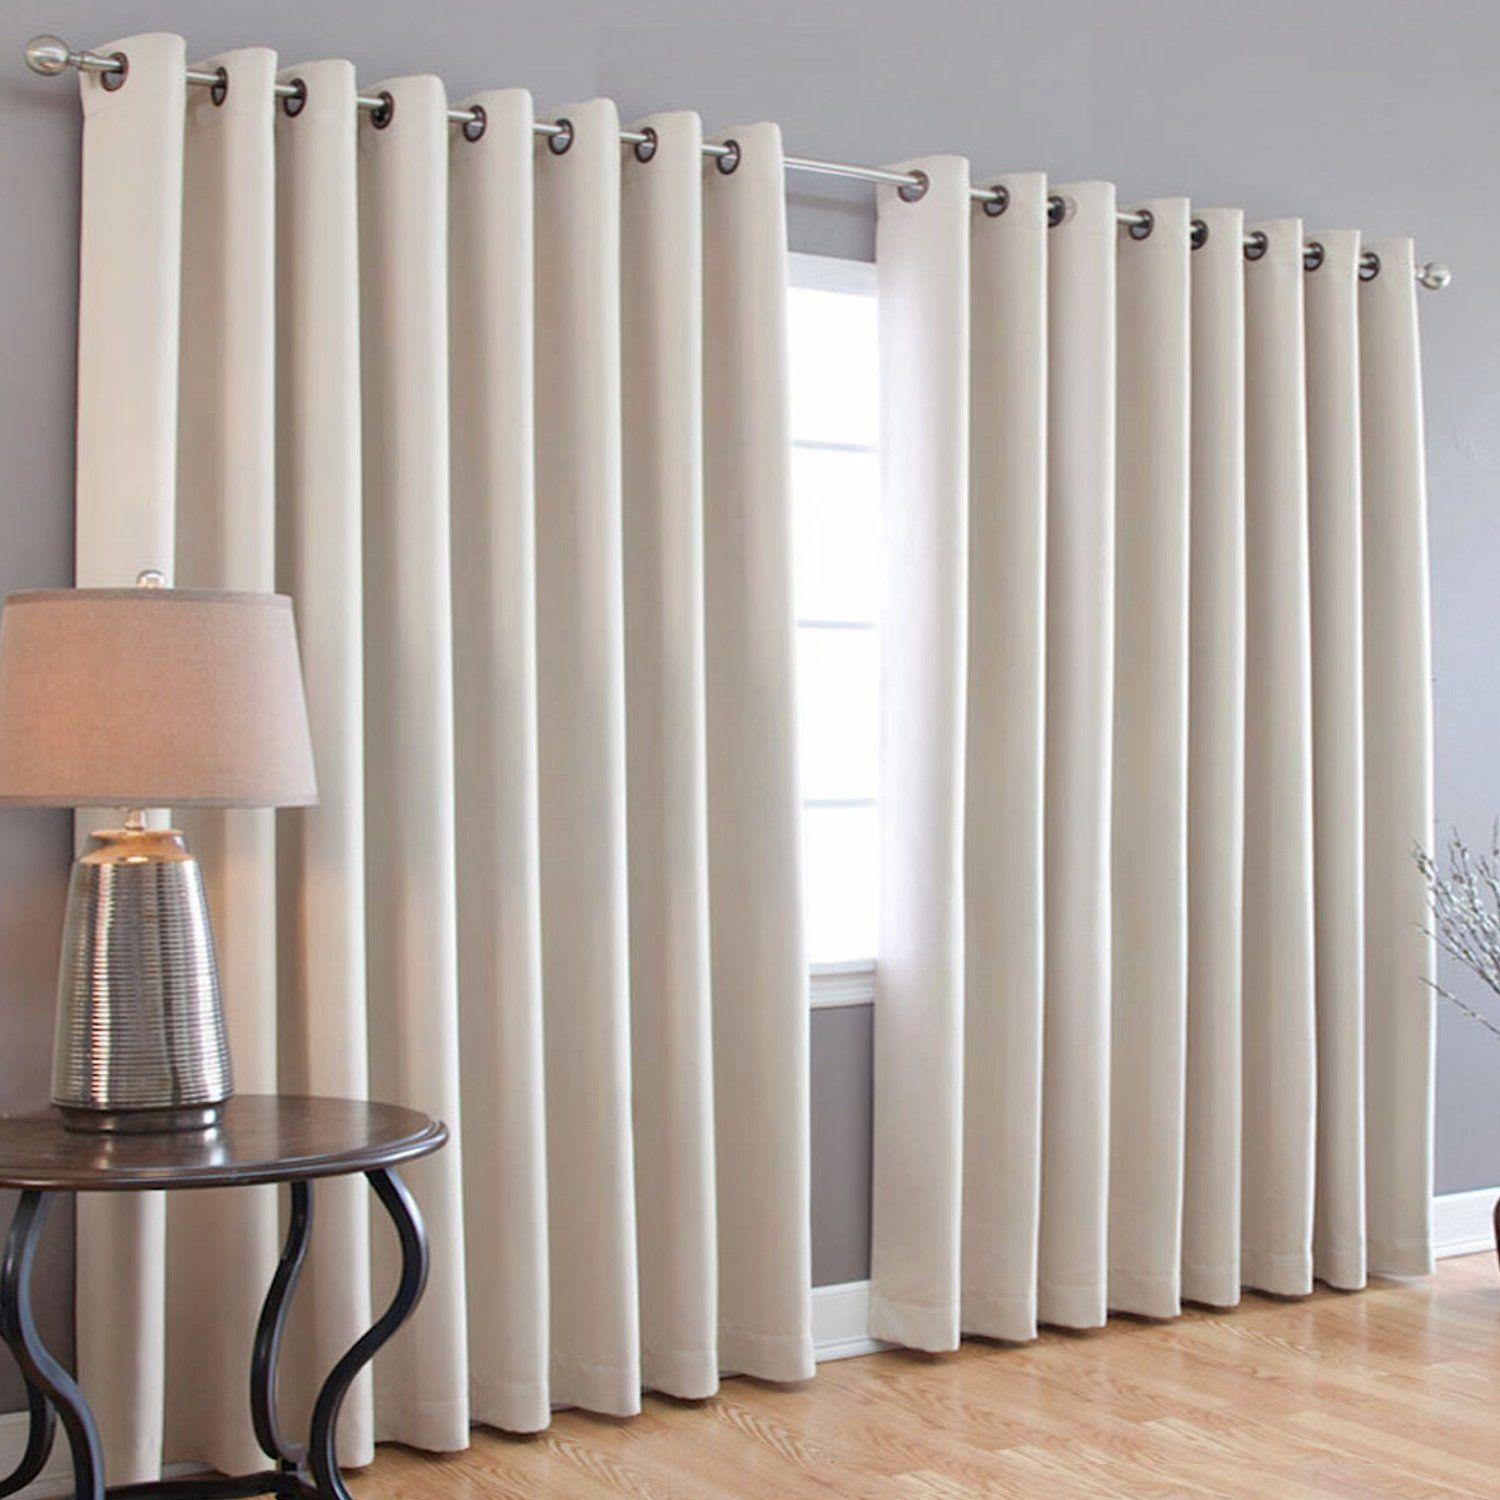 Blackout curtains for bedroom - Black Out Curtains Bedroom